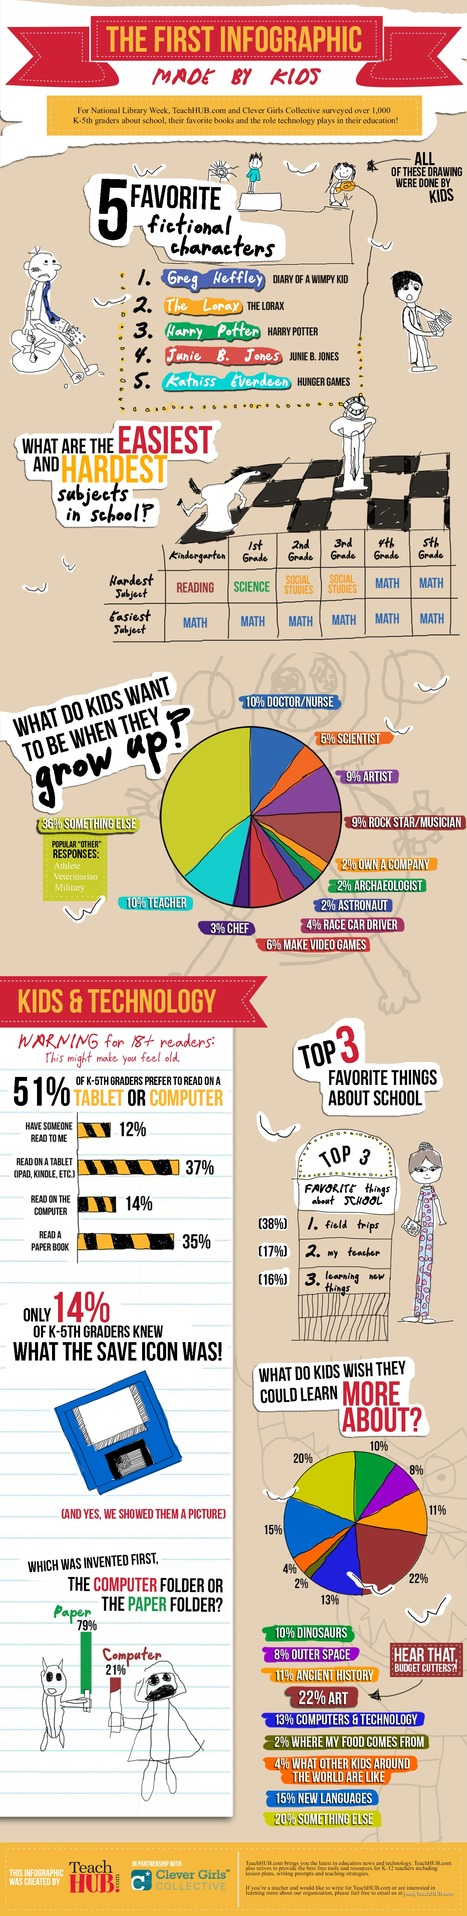 The First Infographic Made by Kids! | Techy Touchy Tools | Scoop.it